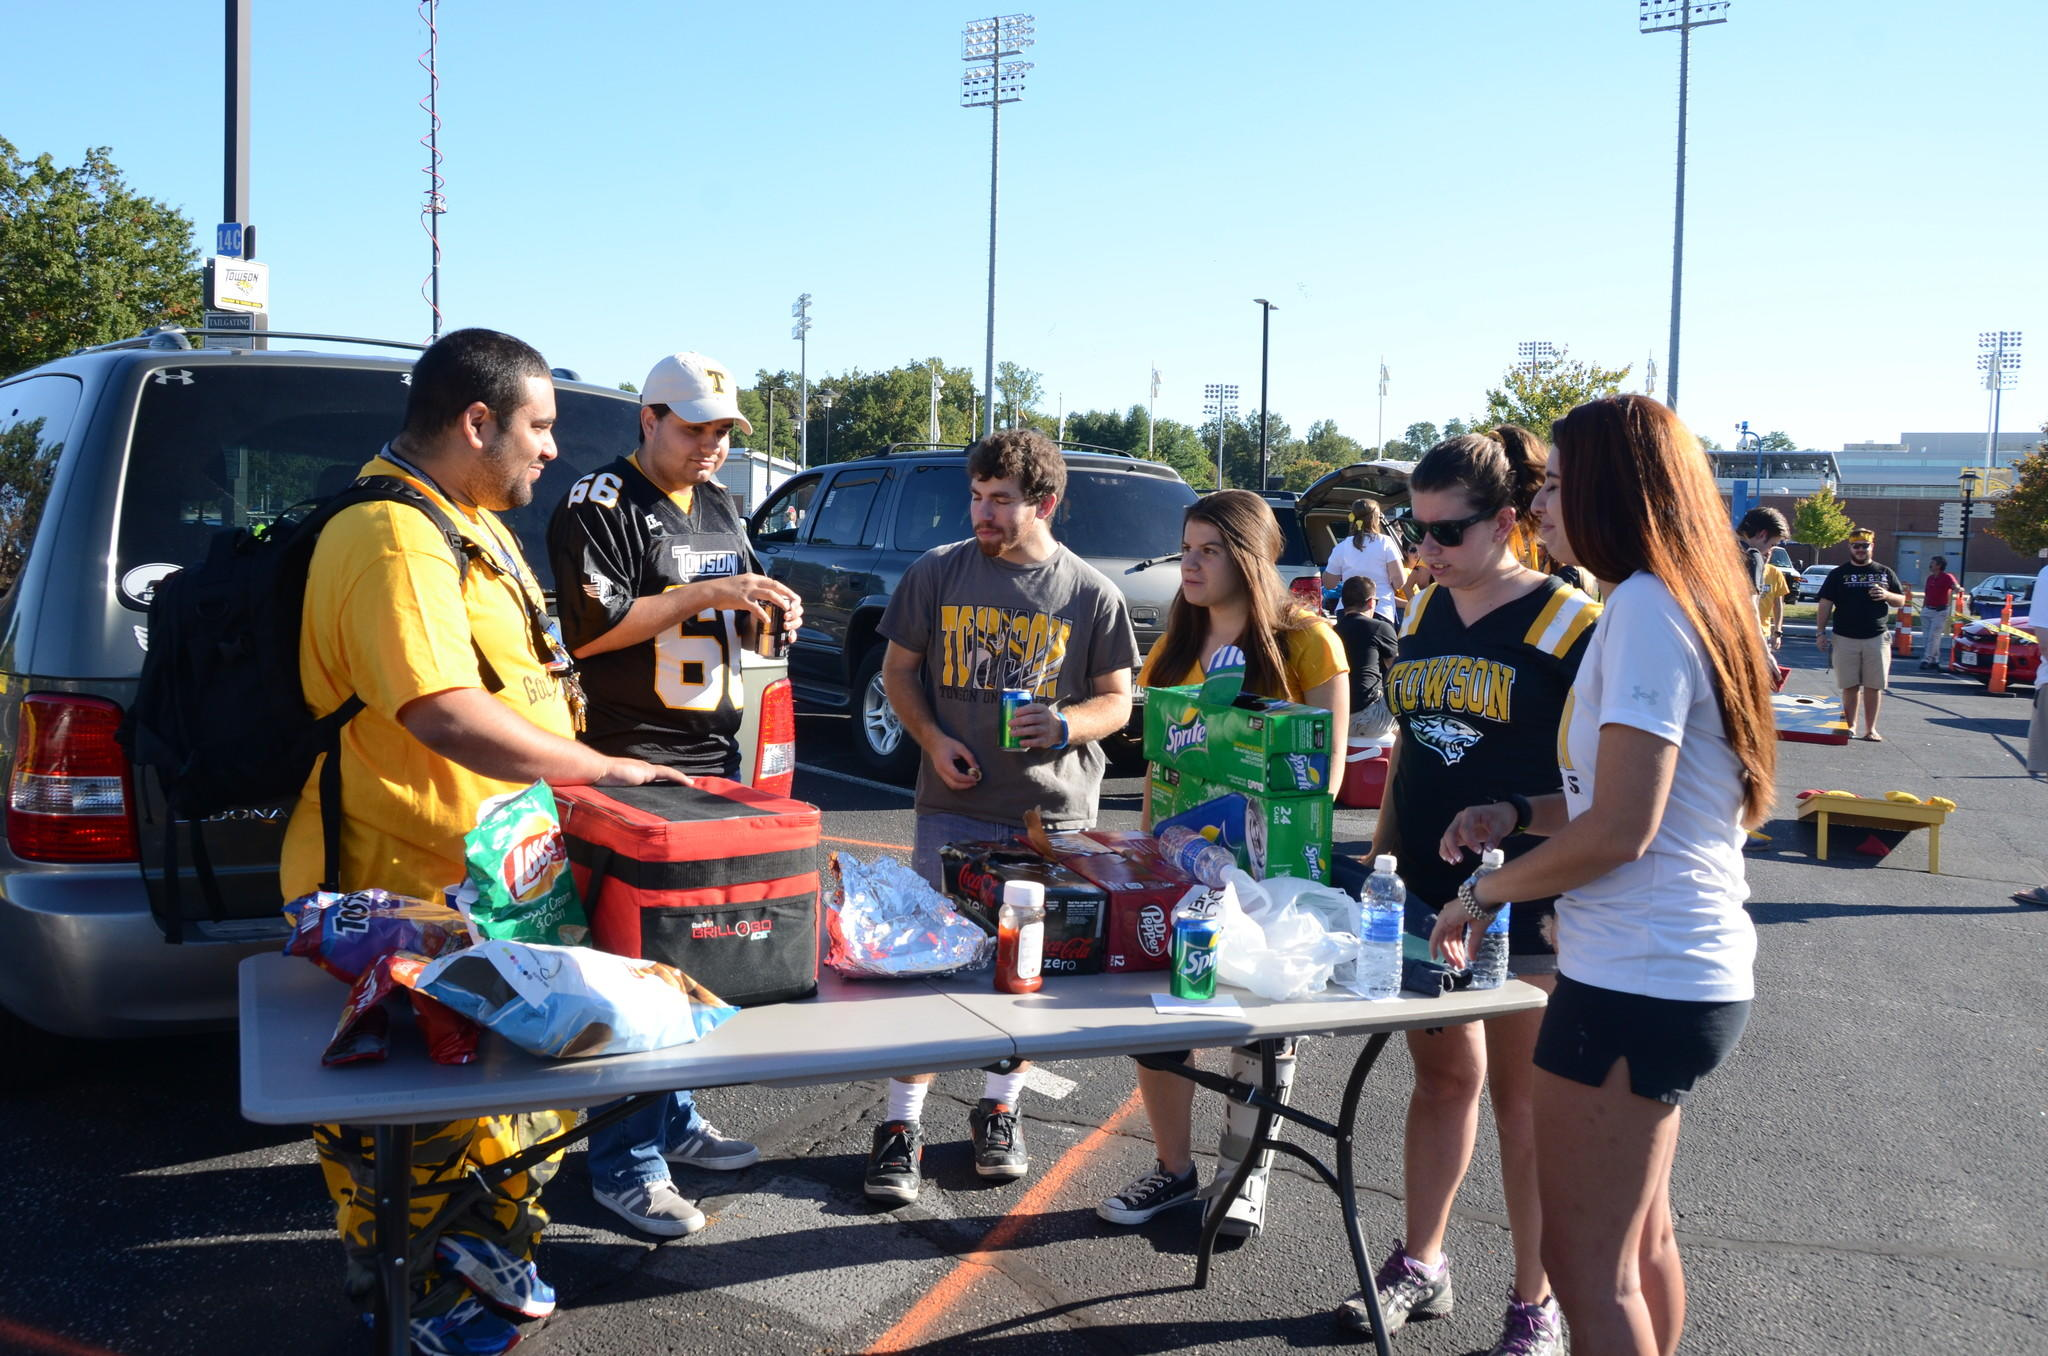 Towson University students, from left, Adam Vargas, Ben Price, Joel Wiener, Karen Cohen, Sara Millman and Rachel Sevel tailgate before Saturday night's football game against the Maine Black Bears. Fewer students tailgated before the game after the university instituted new rules, including a limit on alcohol, a ban on pickup trucks and a requirement to attend a 30-minute workshop in order to get a tailgating permit.